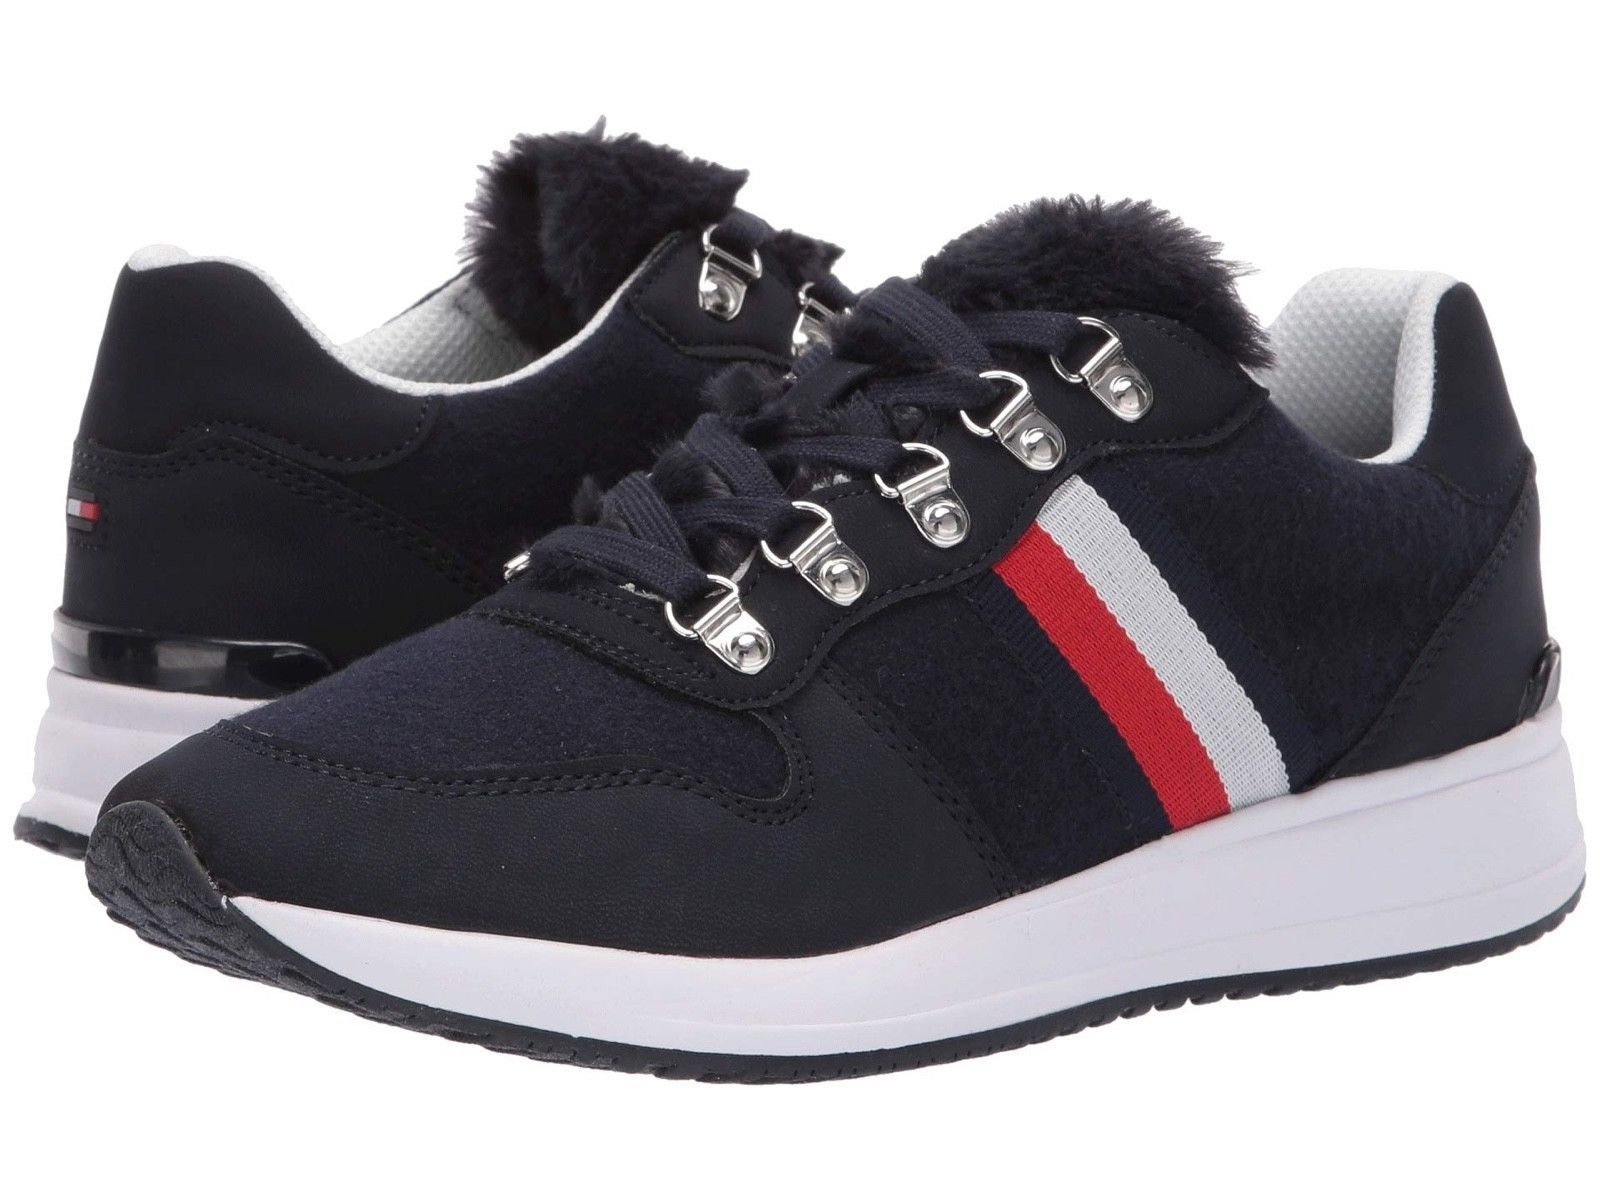 Tommy Hilfiger Women's Sport Athletic Lace-Up Fashion Fur Sneakers Shoes Riplee